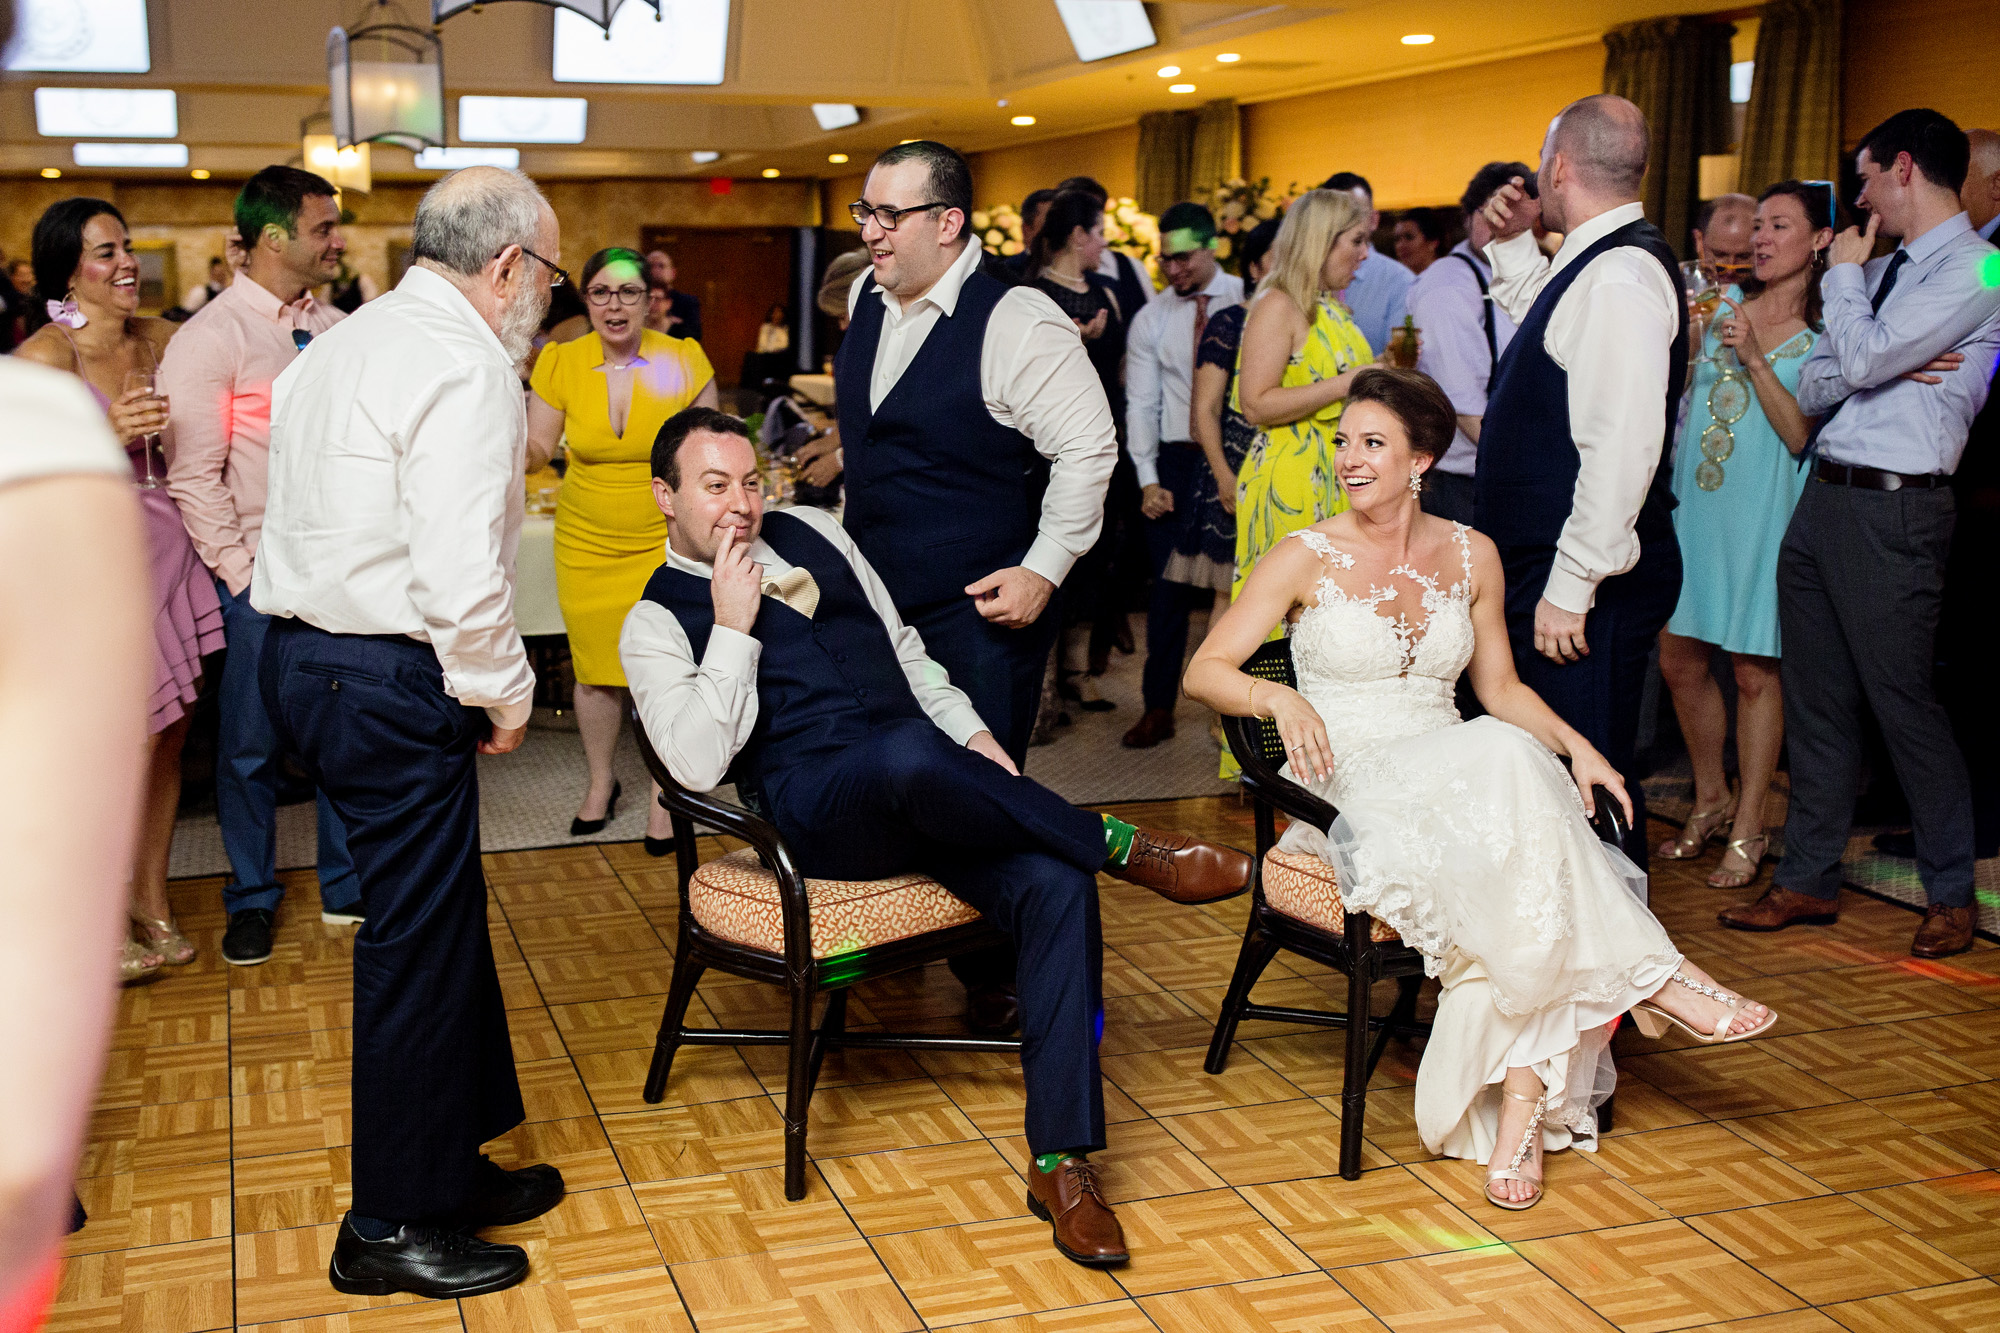 Seriously_Sabrina_Photography_Lexington_Kentucky_Downtown_Keeneland_Clubhouse_Wedding_Spitzer_145.jpg